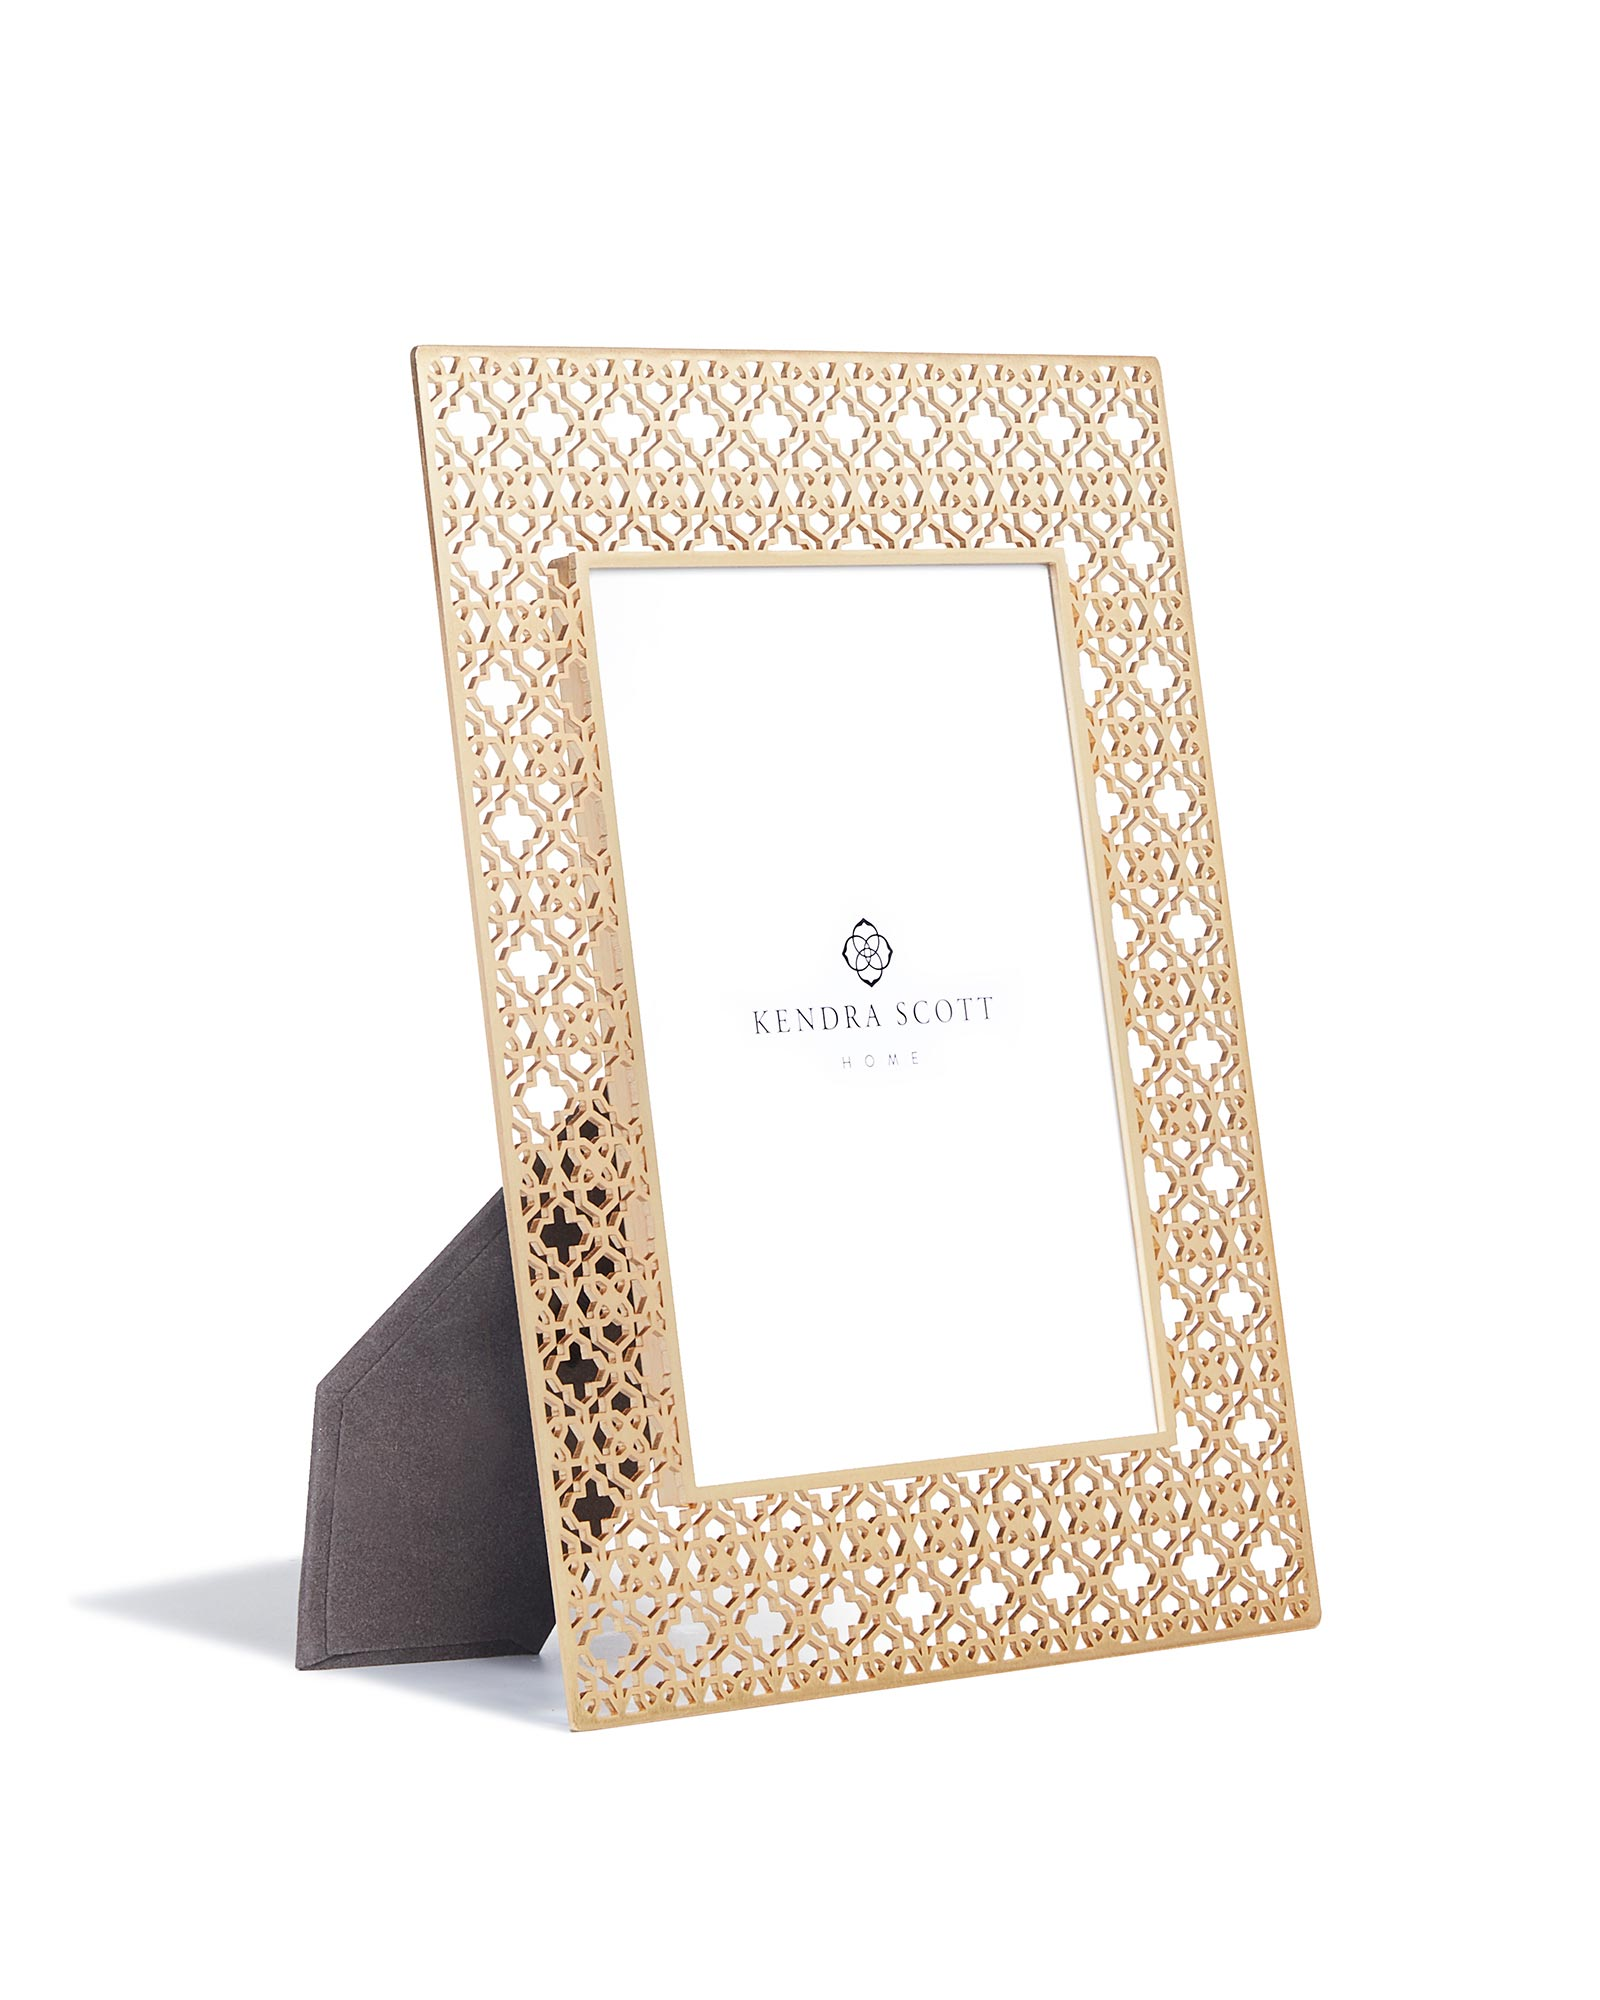 5x7 Filigree Photo Frame in Bright Brass